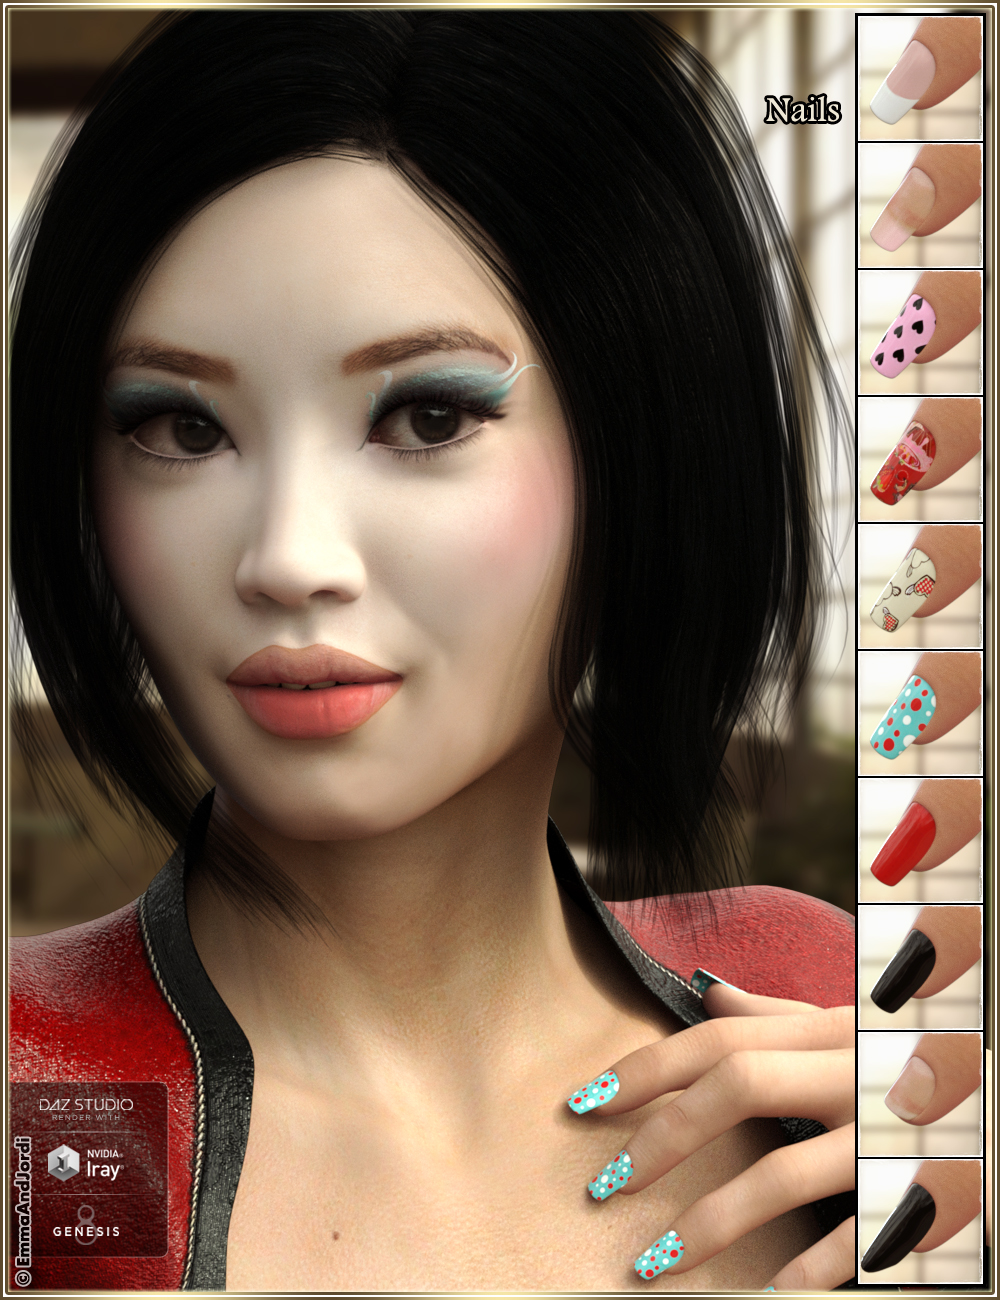 EJ Midori for Genesis 8 Female   3D Models and 3D Software